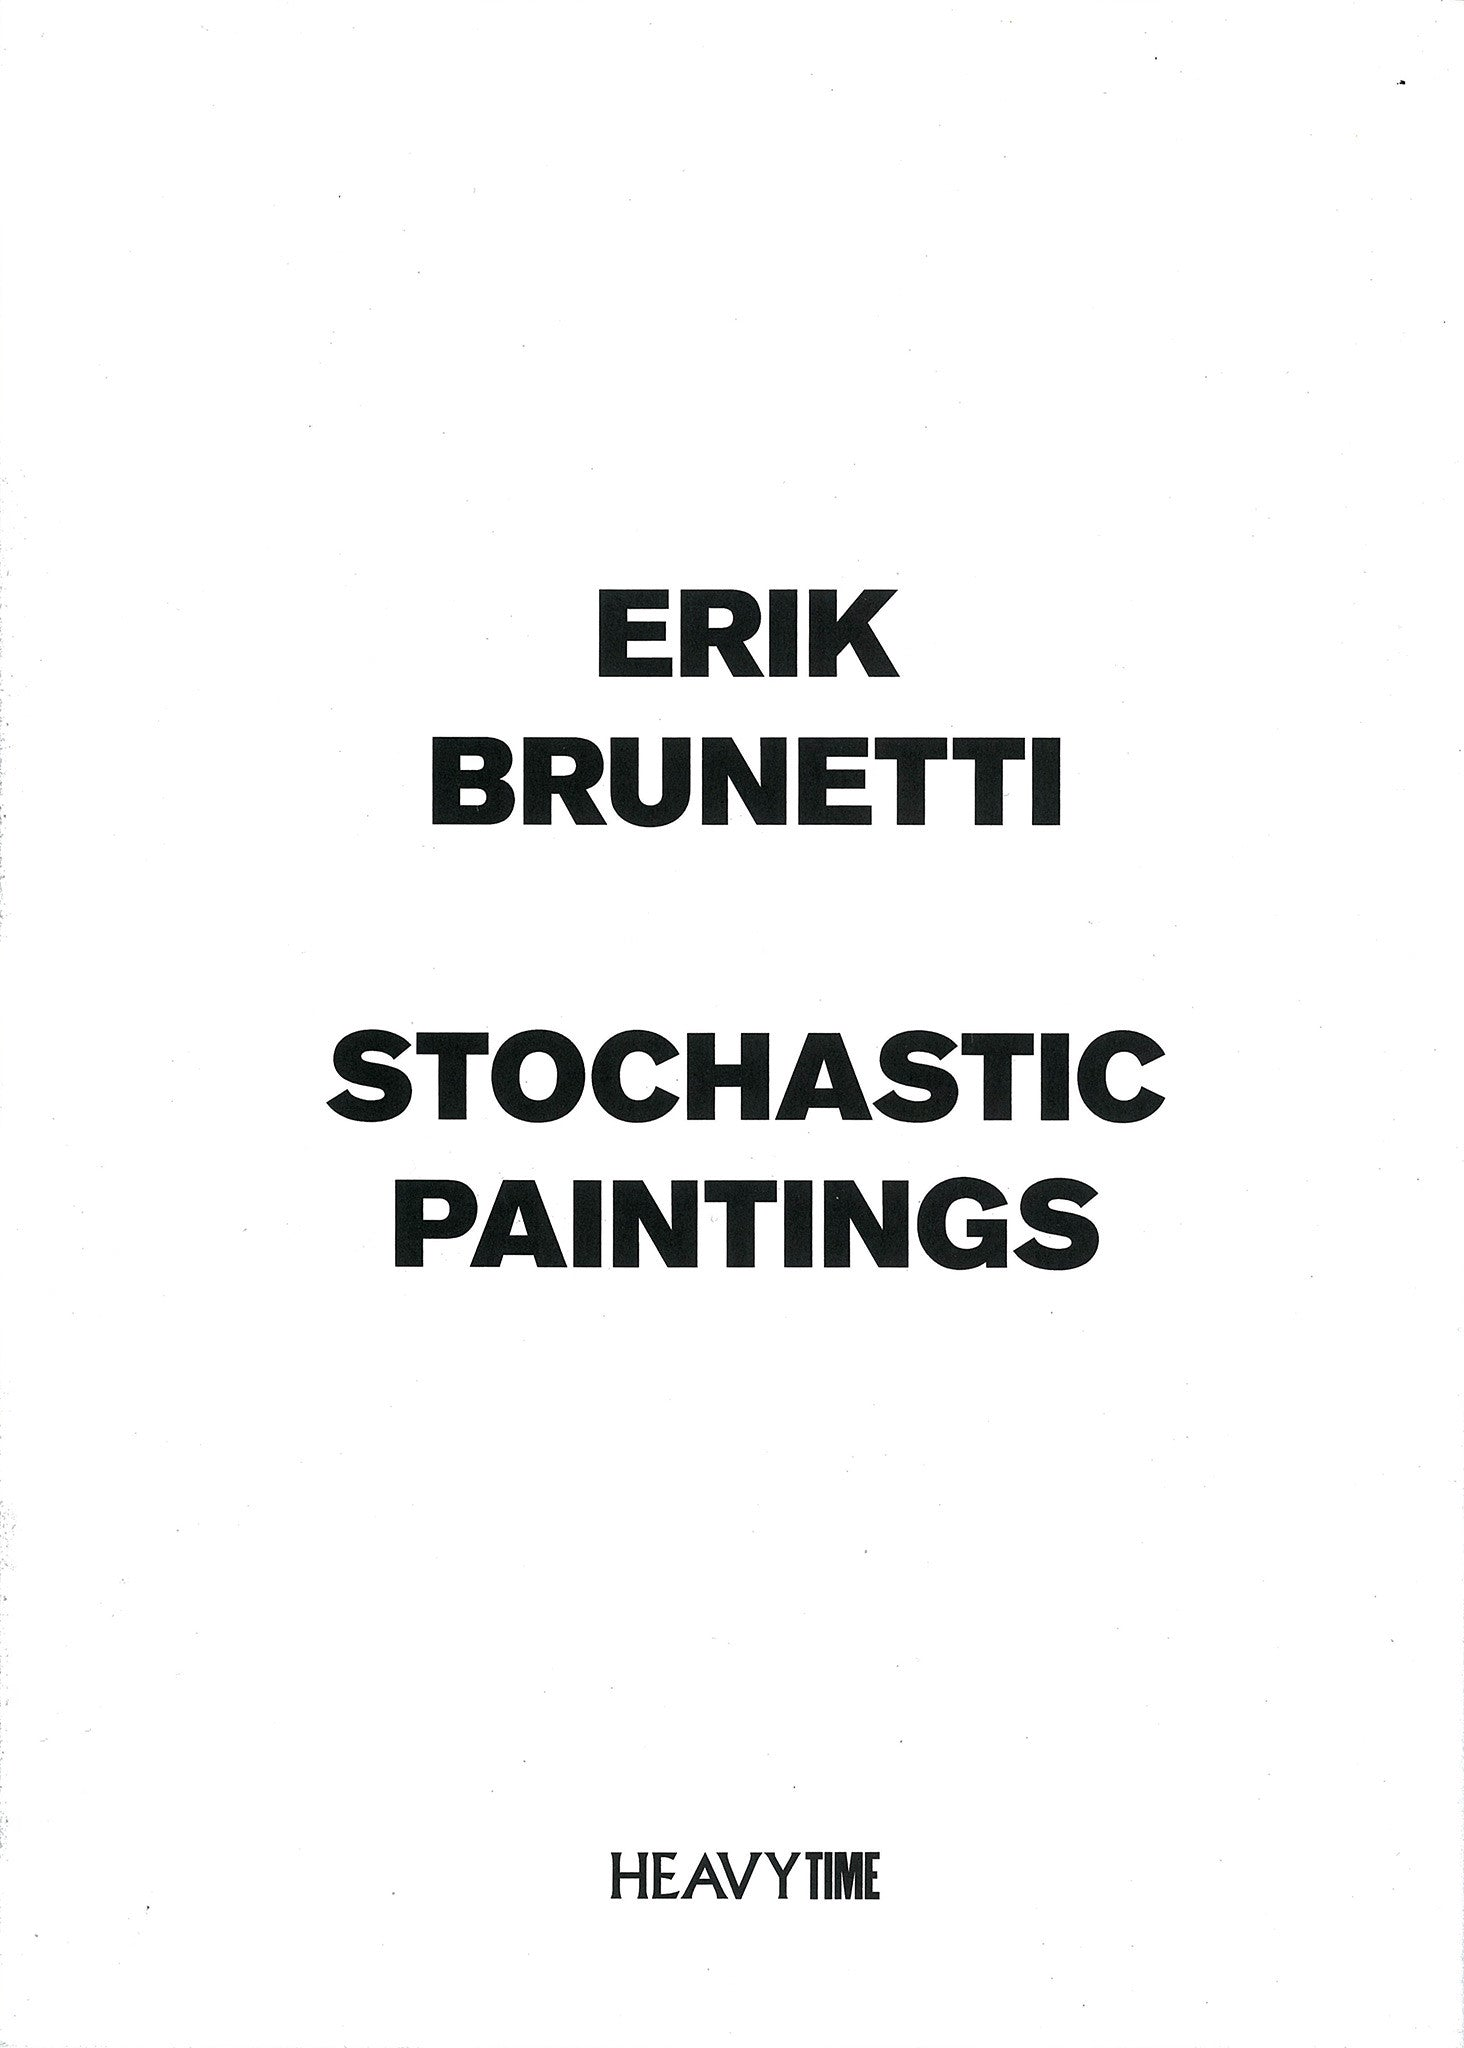 ERIK BRUNETTI. Stochastic Paintings.